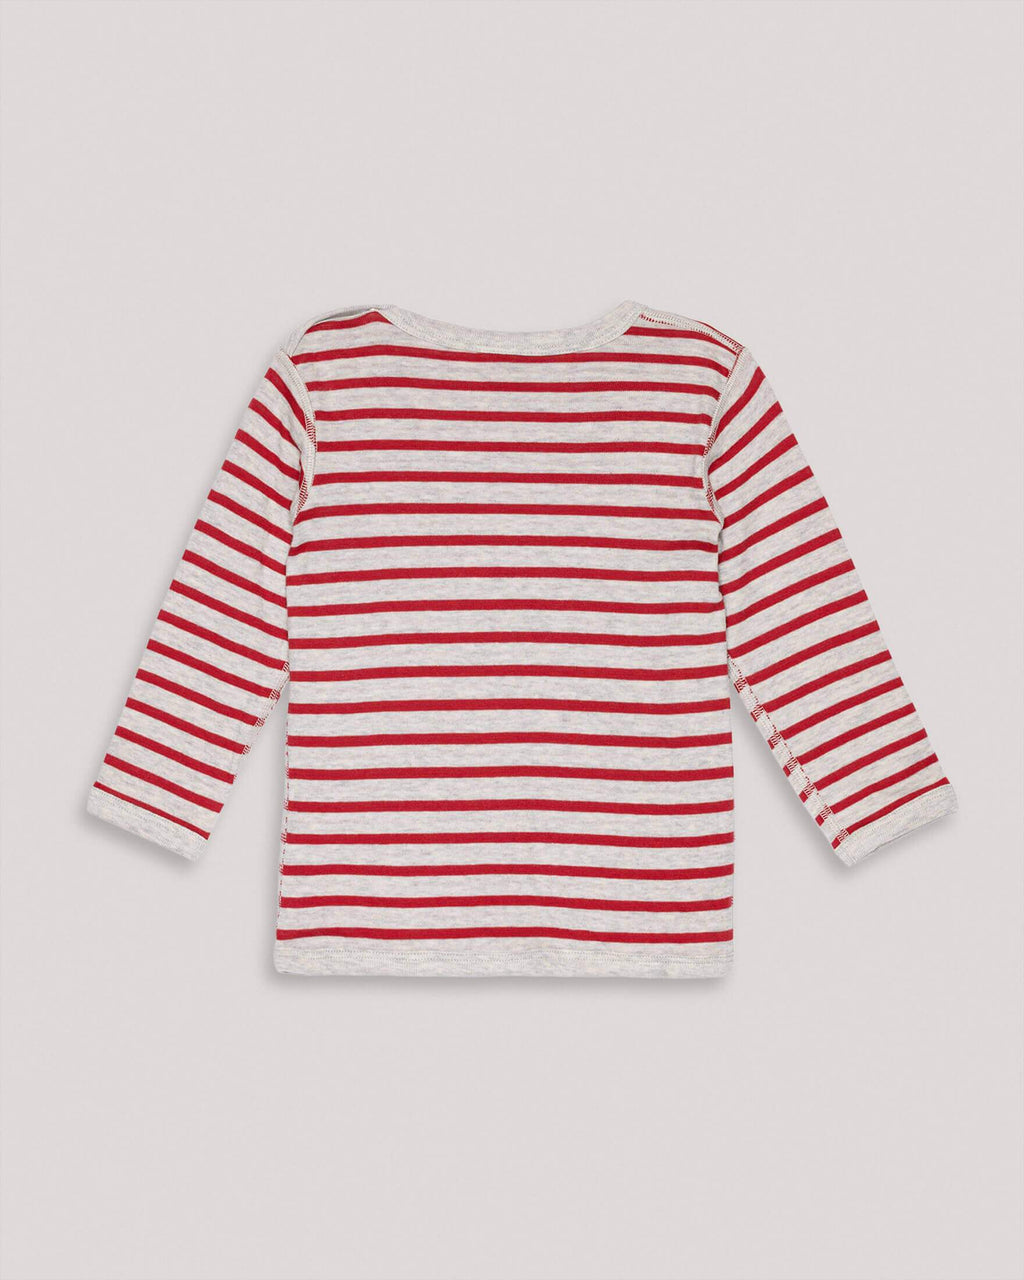 variant_2 | EN Organic Red Grey striped reversible Longsleeve for Kids | DE Rot Graues wendbares Langarmshirt Sweatshirt Streifen für Kinder